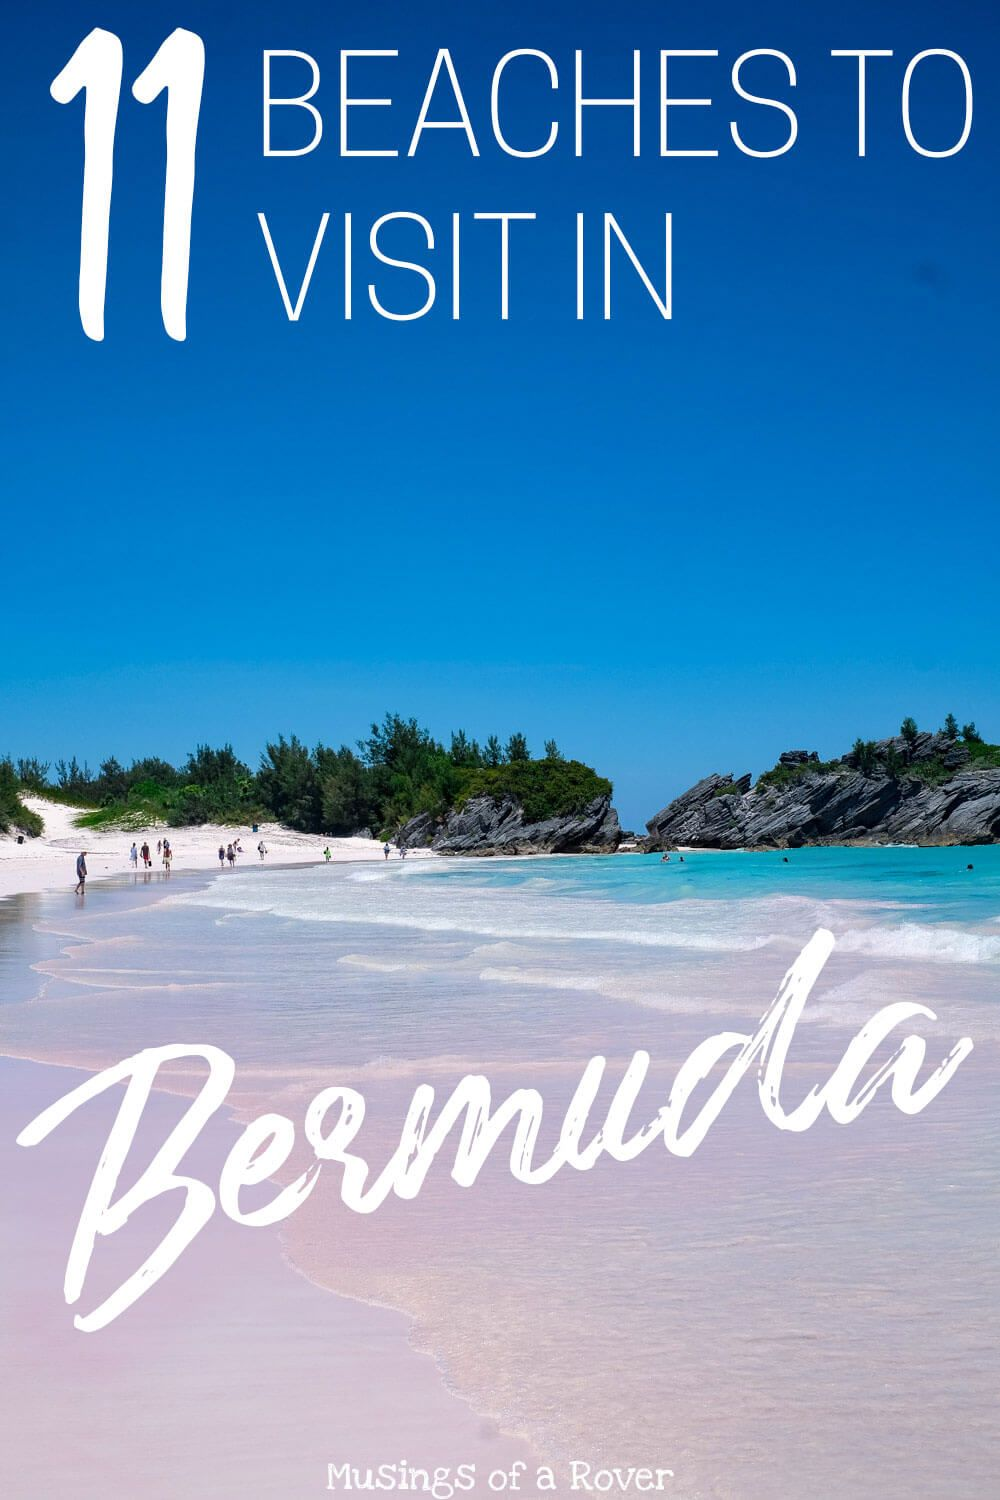 Are you headed to Bermuda? You can't miss the island's beaches. Pink sands, crystal clear water, and coral reefs. Plus it's got a beach for everyone! Want to grab a bite to eat and drink a rum swizzle? Horseshoe Bay and Tobacco Bay have you covered. Want total isolation? Head to Cooper's Island Nature Reserve. Want some great snorkeling? Church Bay. Plus loads in between. Bermuda has a beach for you!